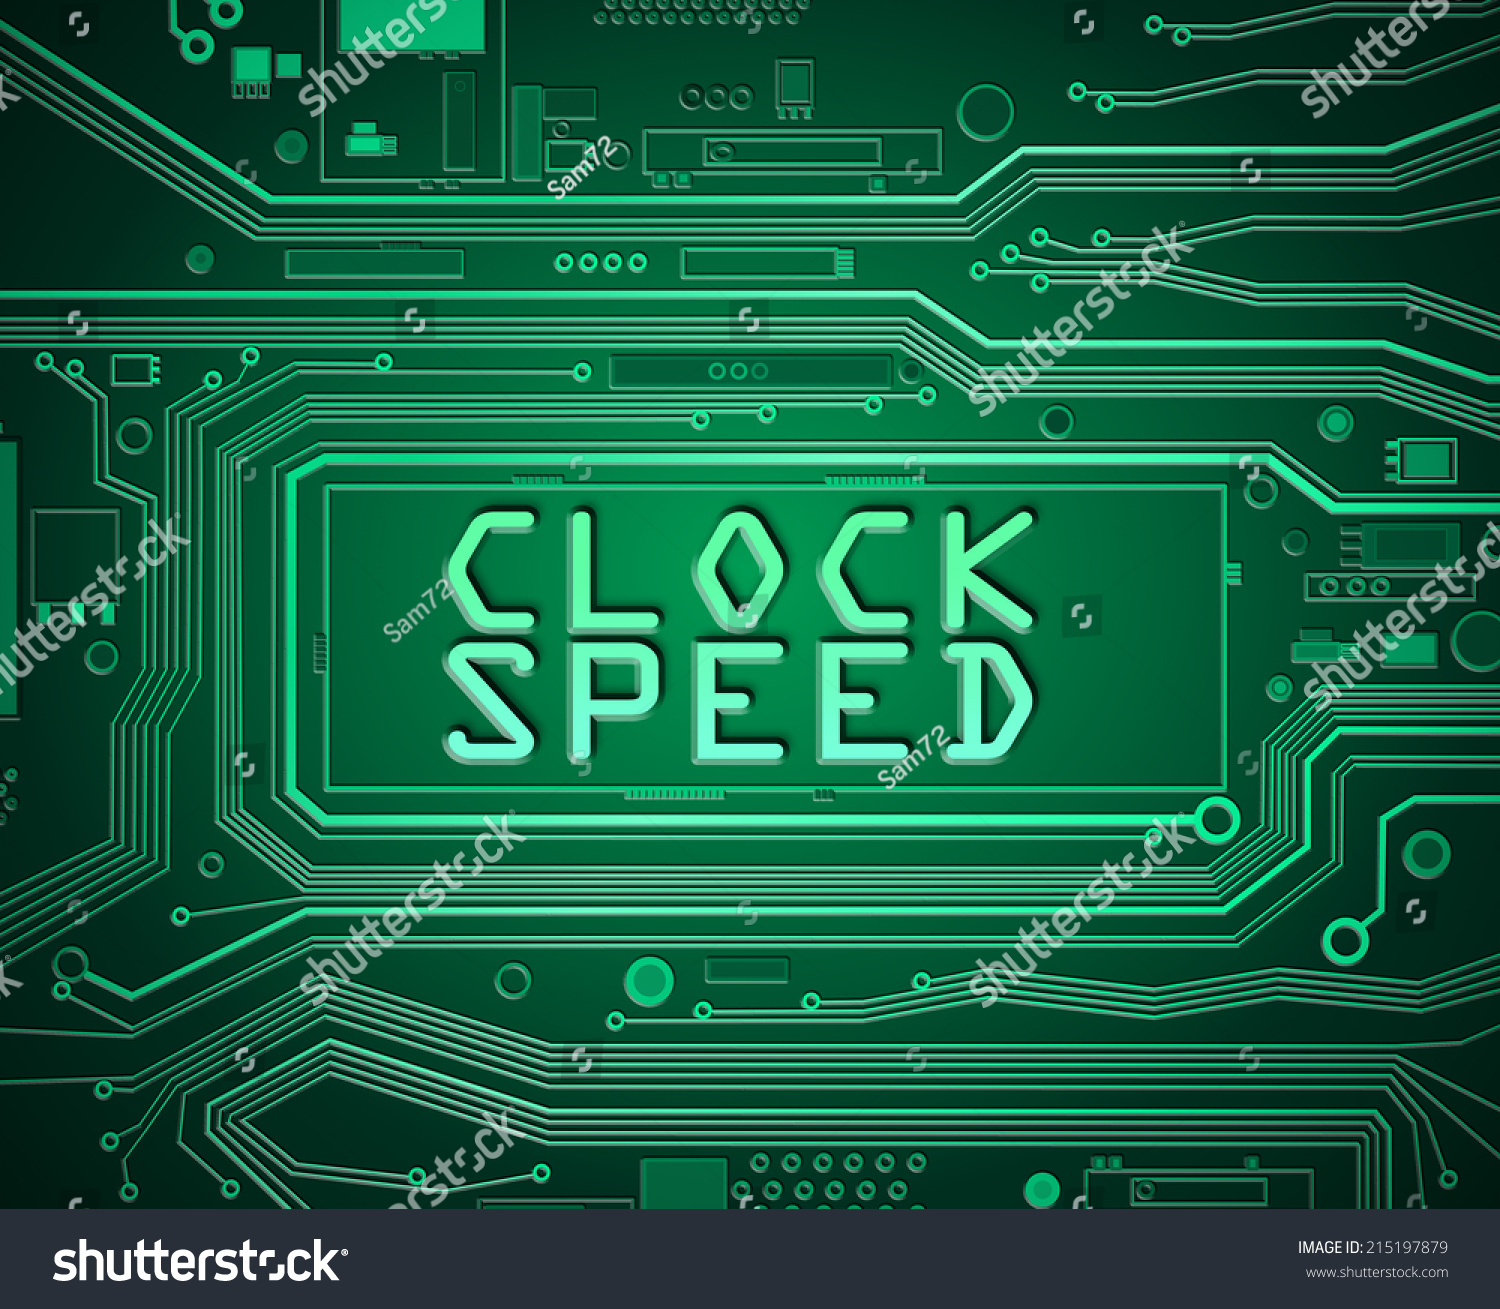 Blockchain Style On Green Background Ez Canvas Of Printed Circuit Board Illustration A